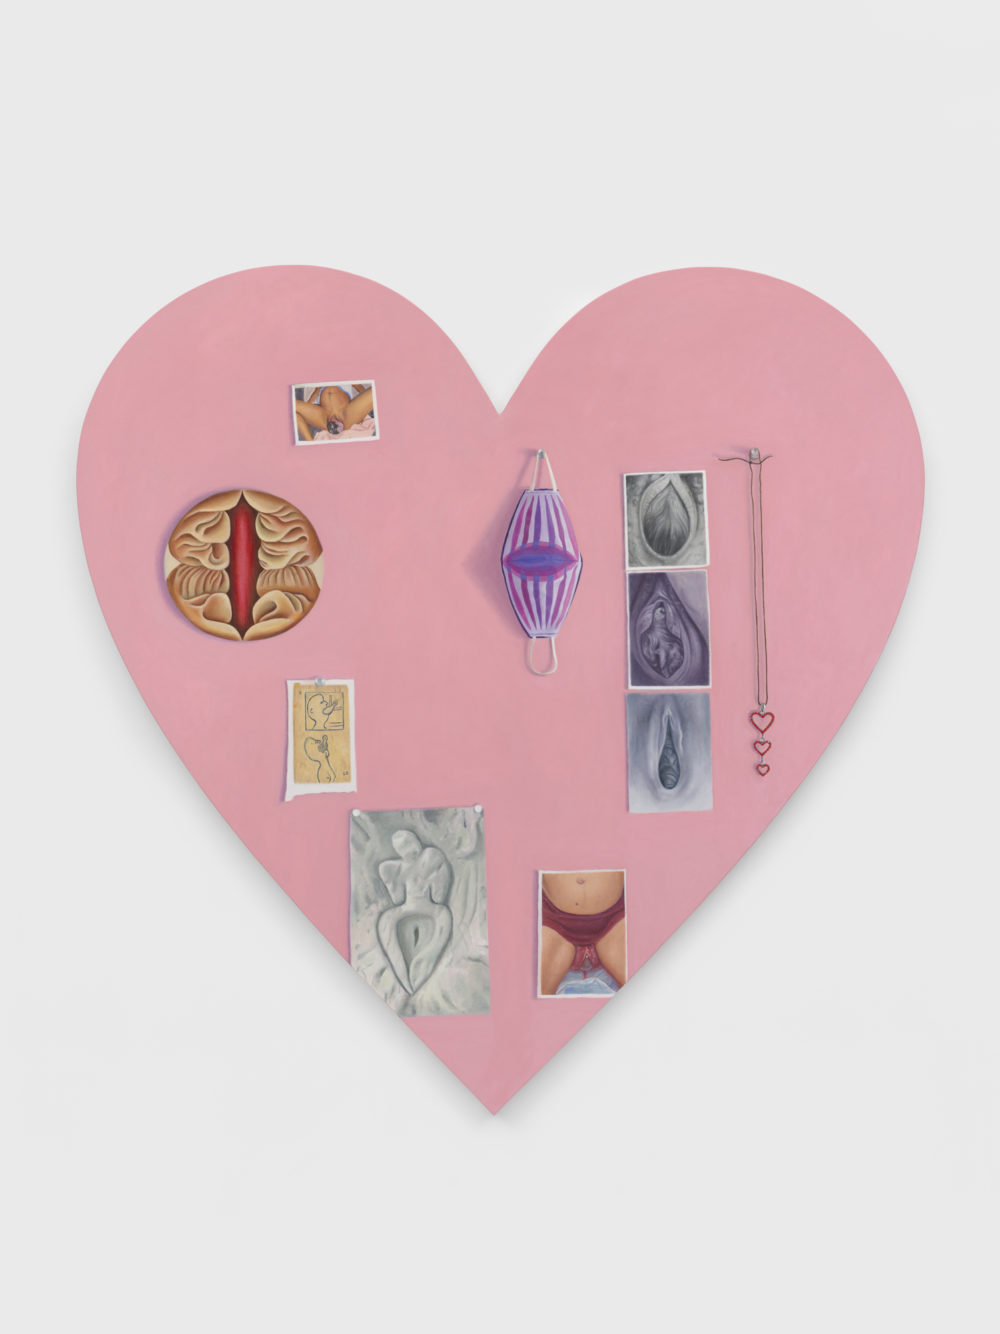 Pink heart-shaped canvas with images of crowning and art historical reference images.